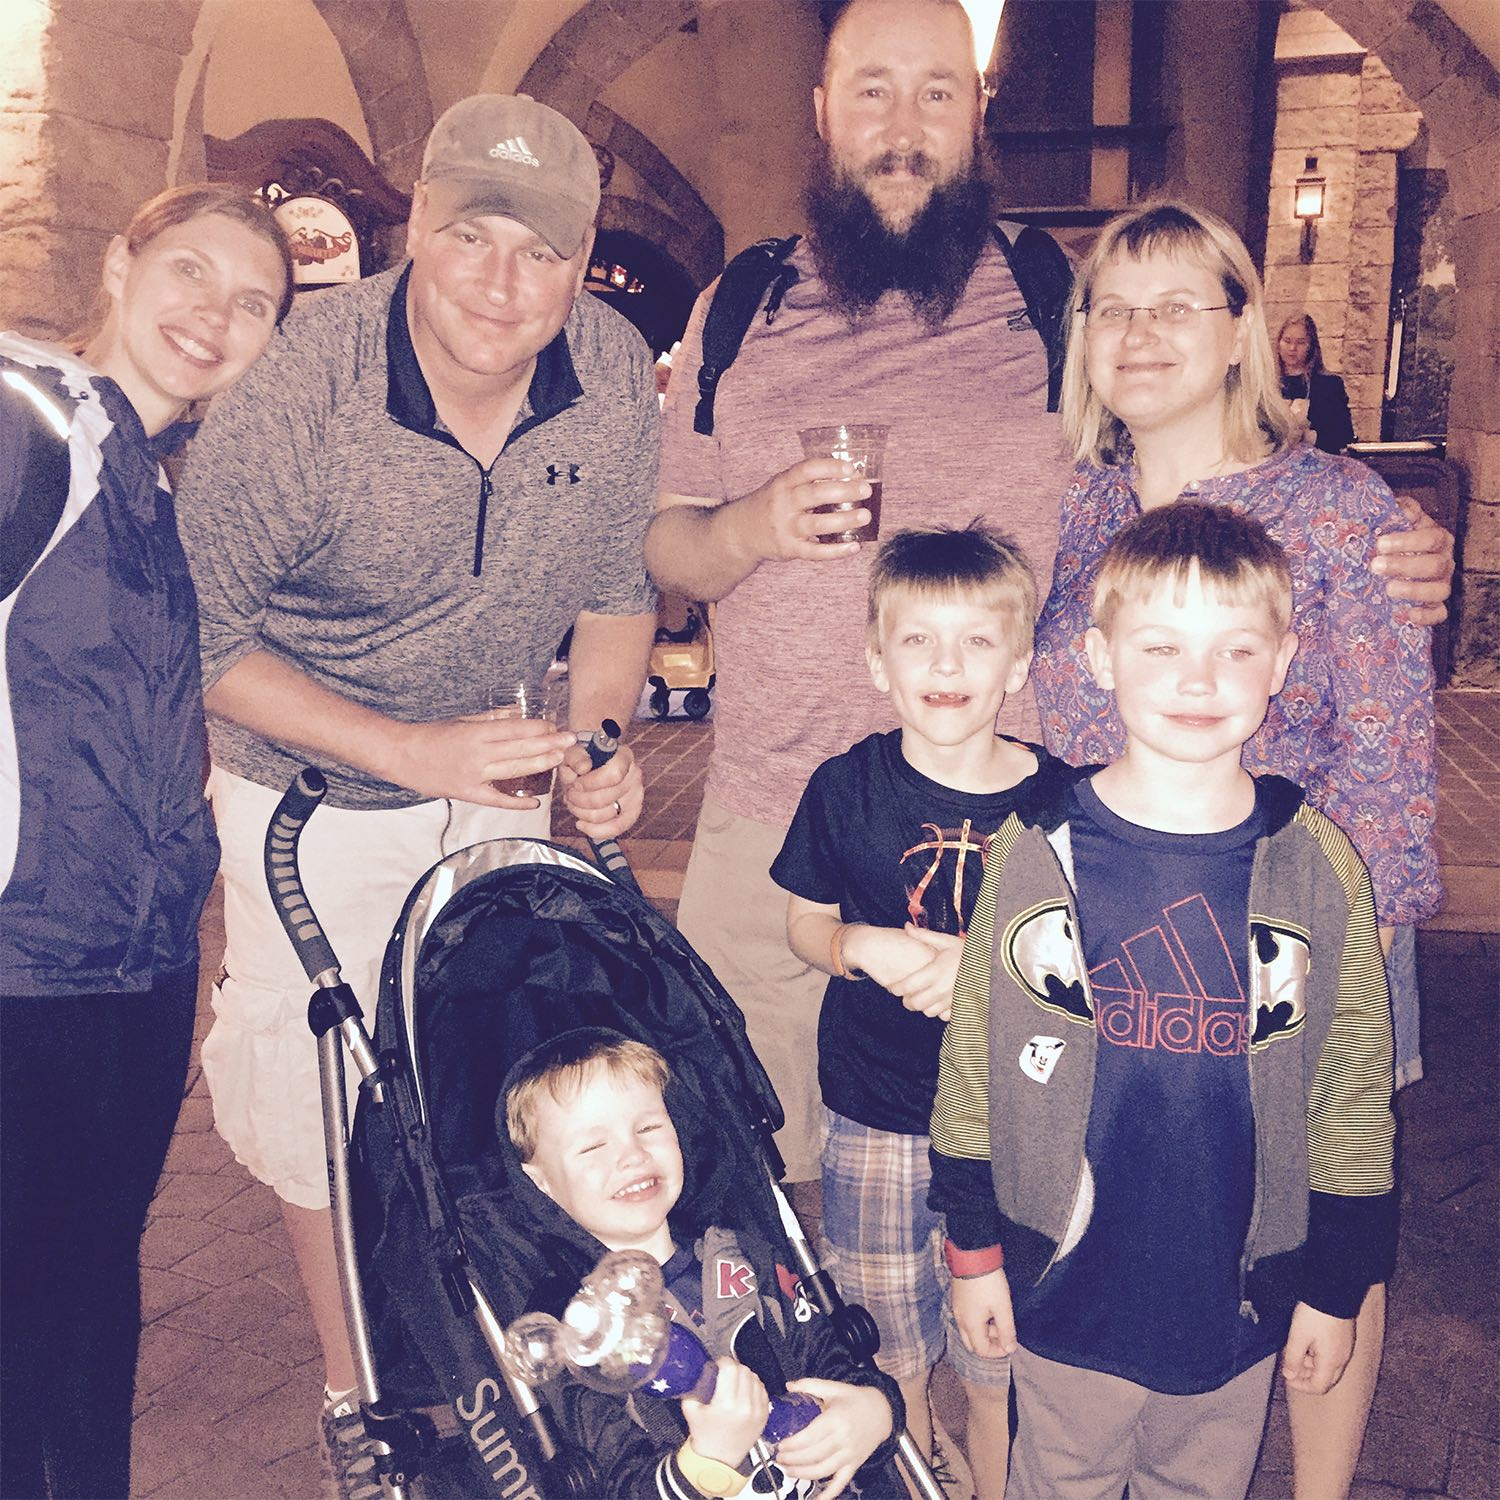 We are grateful to Doug and Rita for taking us with them to Disneyworld. We made the absolute best of it despite our troubles. Maybe someday we can go back and do it a second time without a hospital stay!